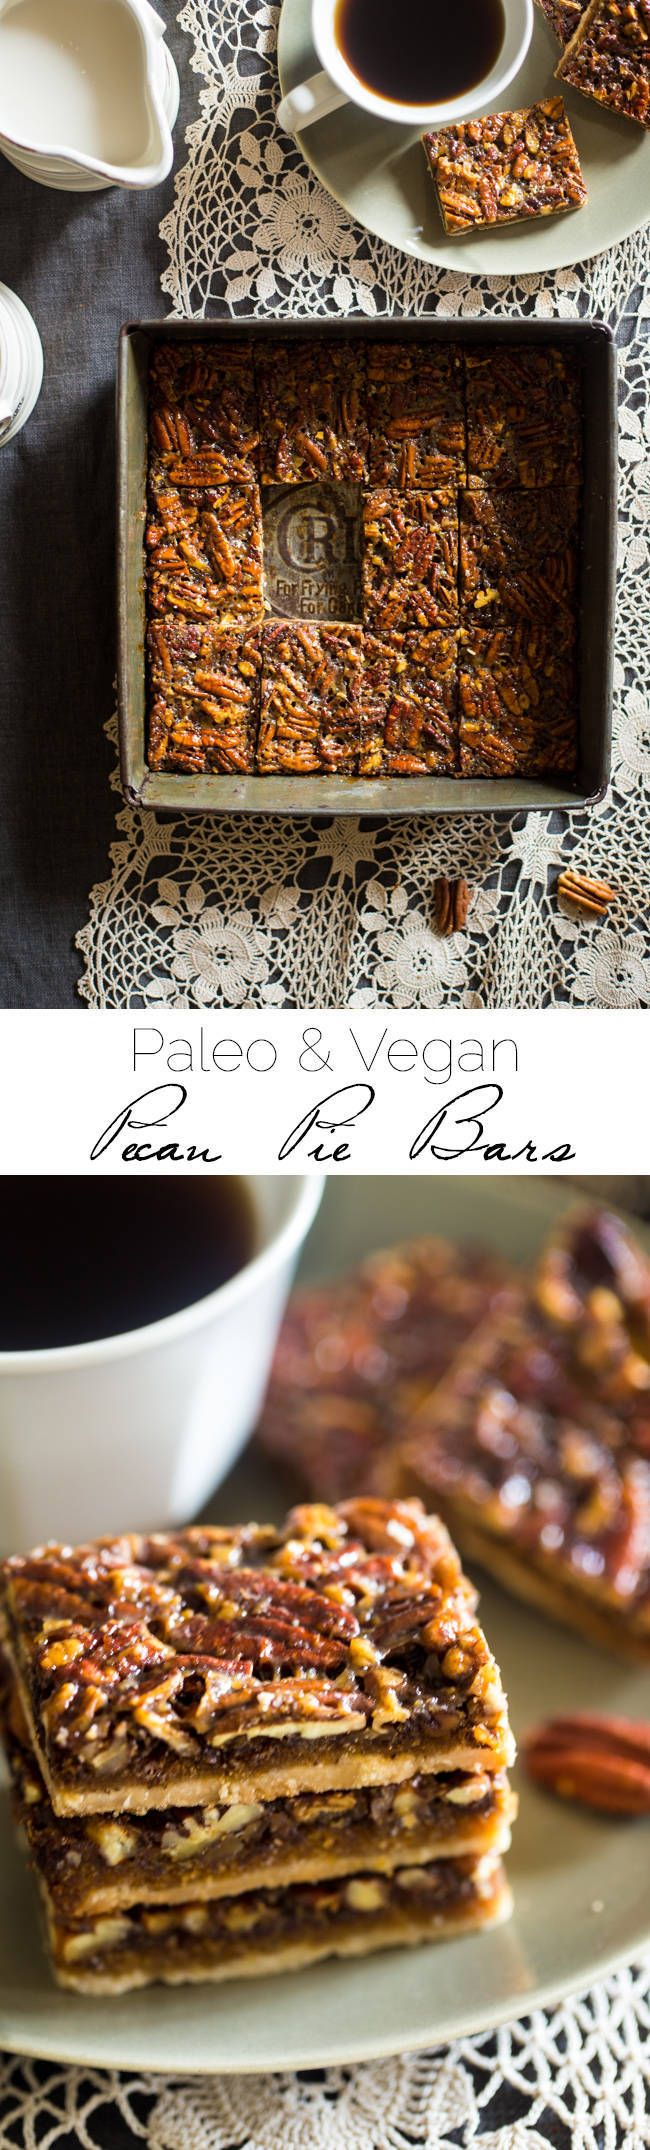 Vegan + Paleo Pecan Pie Bars - These bars are so easy to make and only have 6 ingredients. You would never know they're secretly a healthy, gluten free, and vegan-friendly treat that's perfect for Thanksgiving!